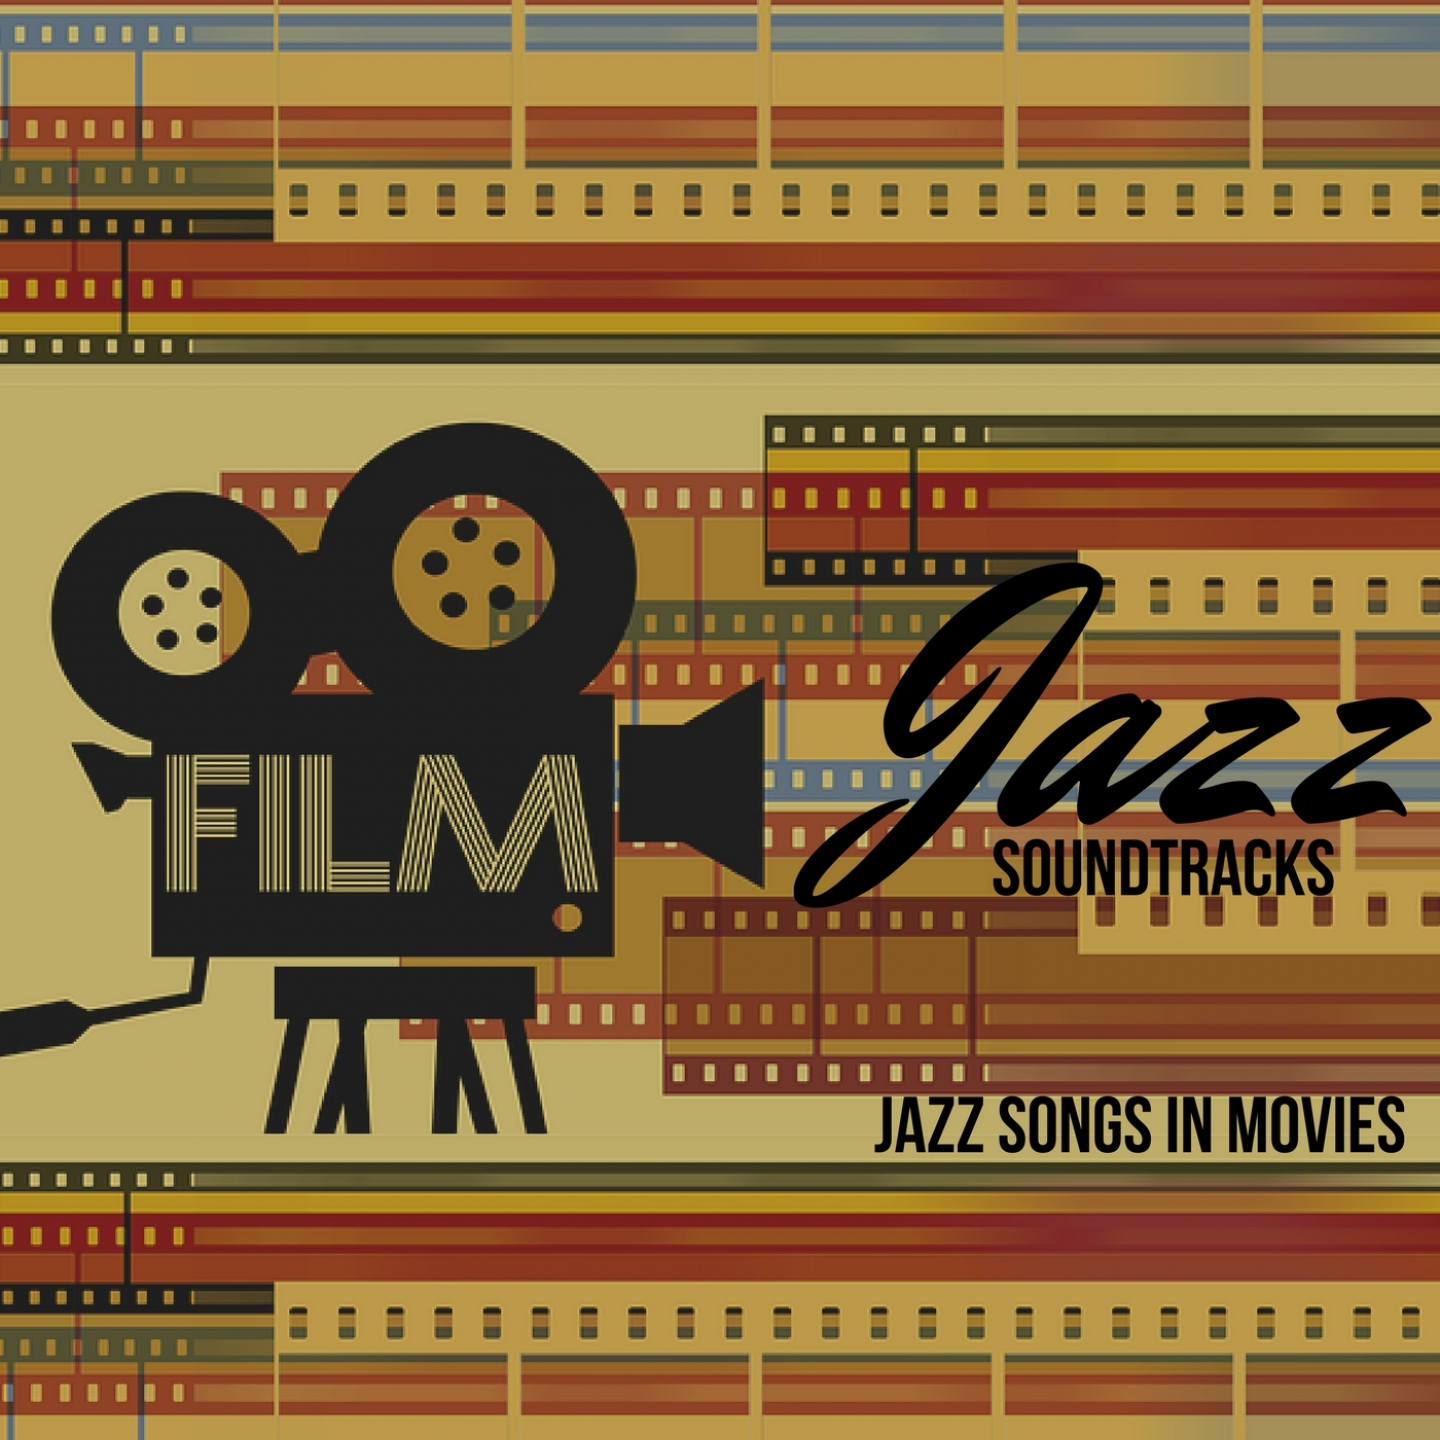 Jazz Soundtracks - Jazz Songs in Movies